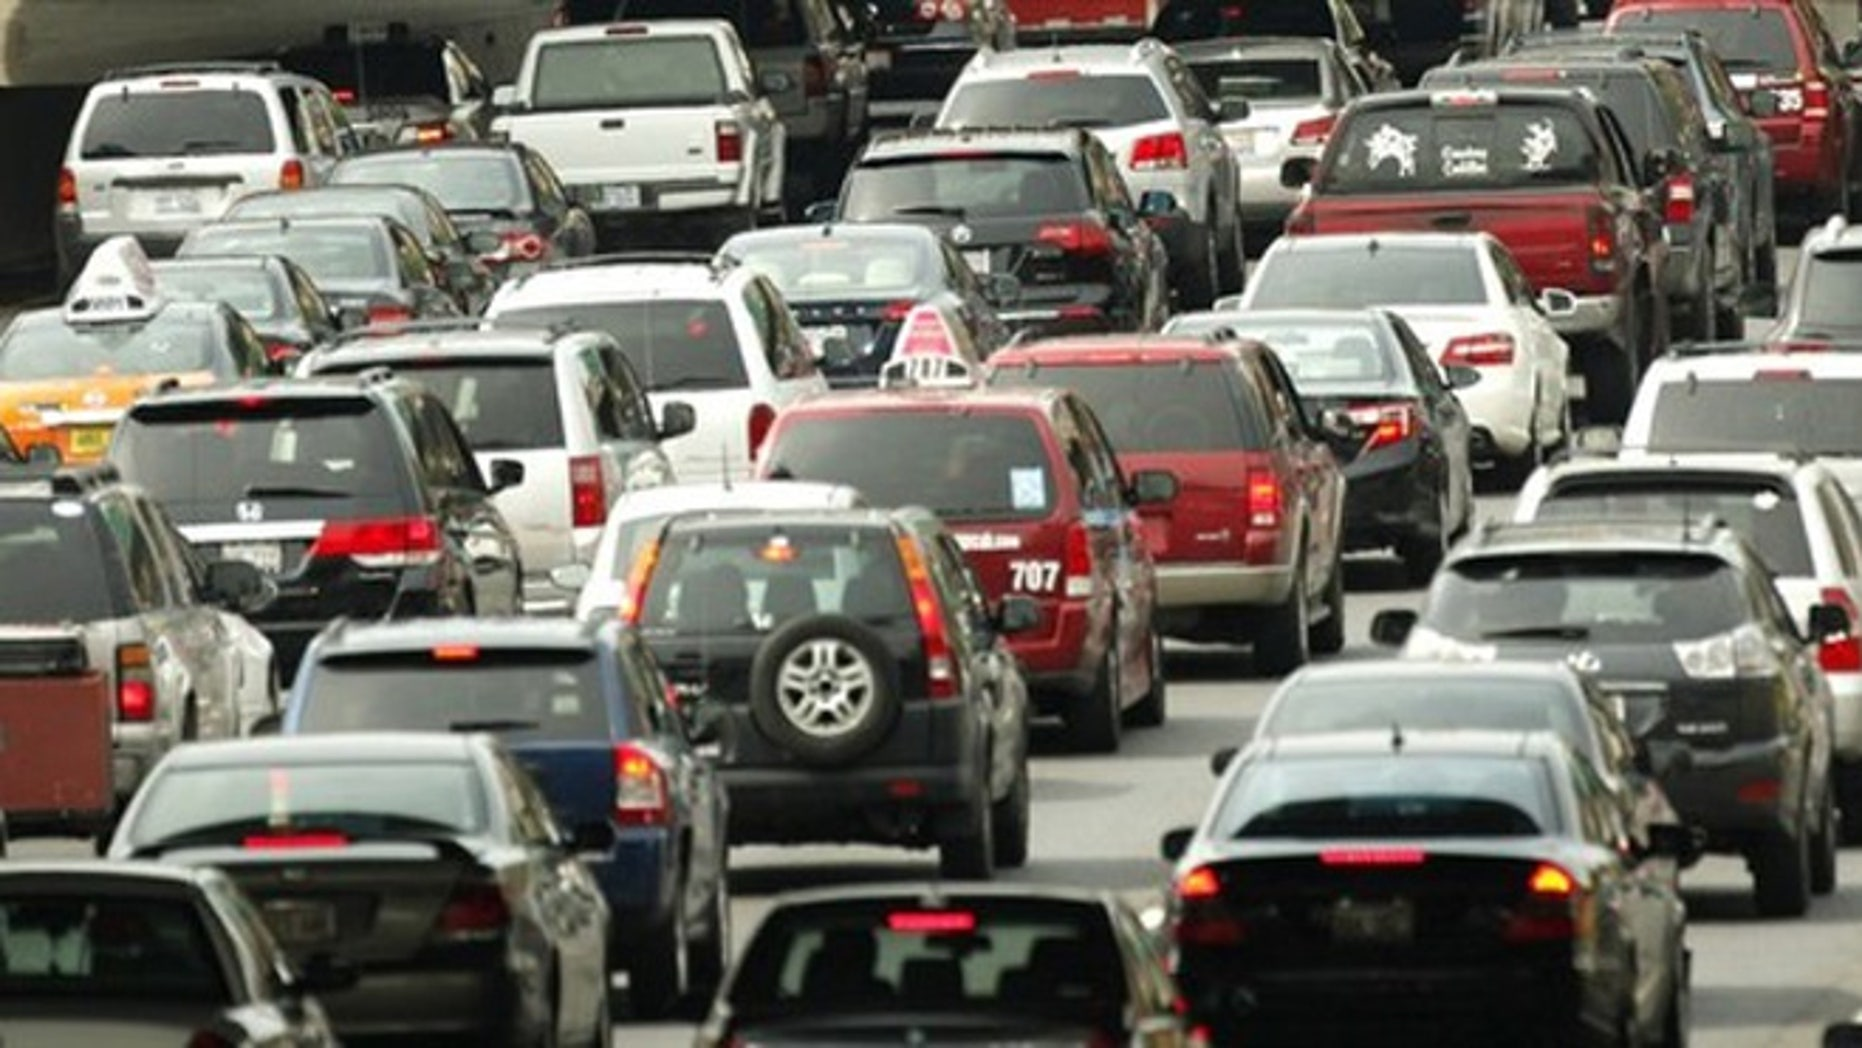 Stuck in traffic? There's an app for that.